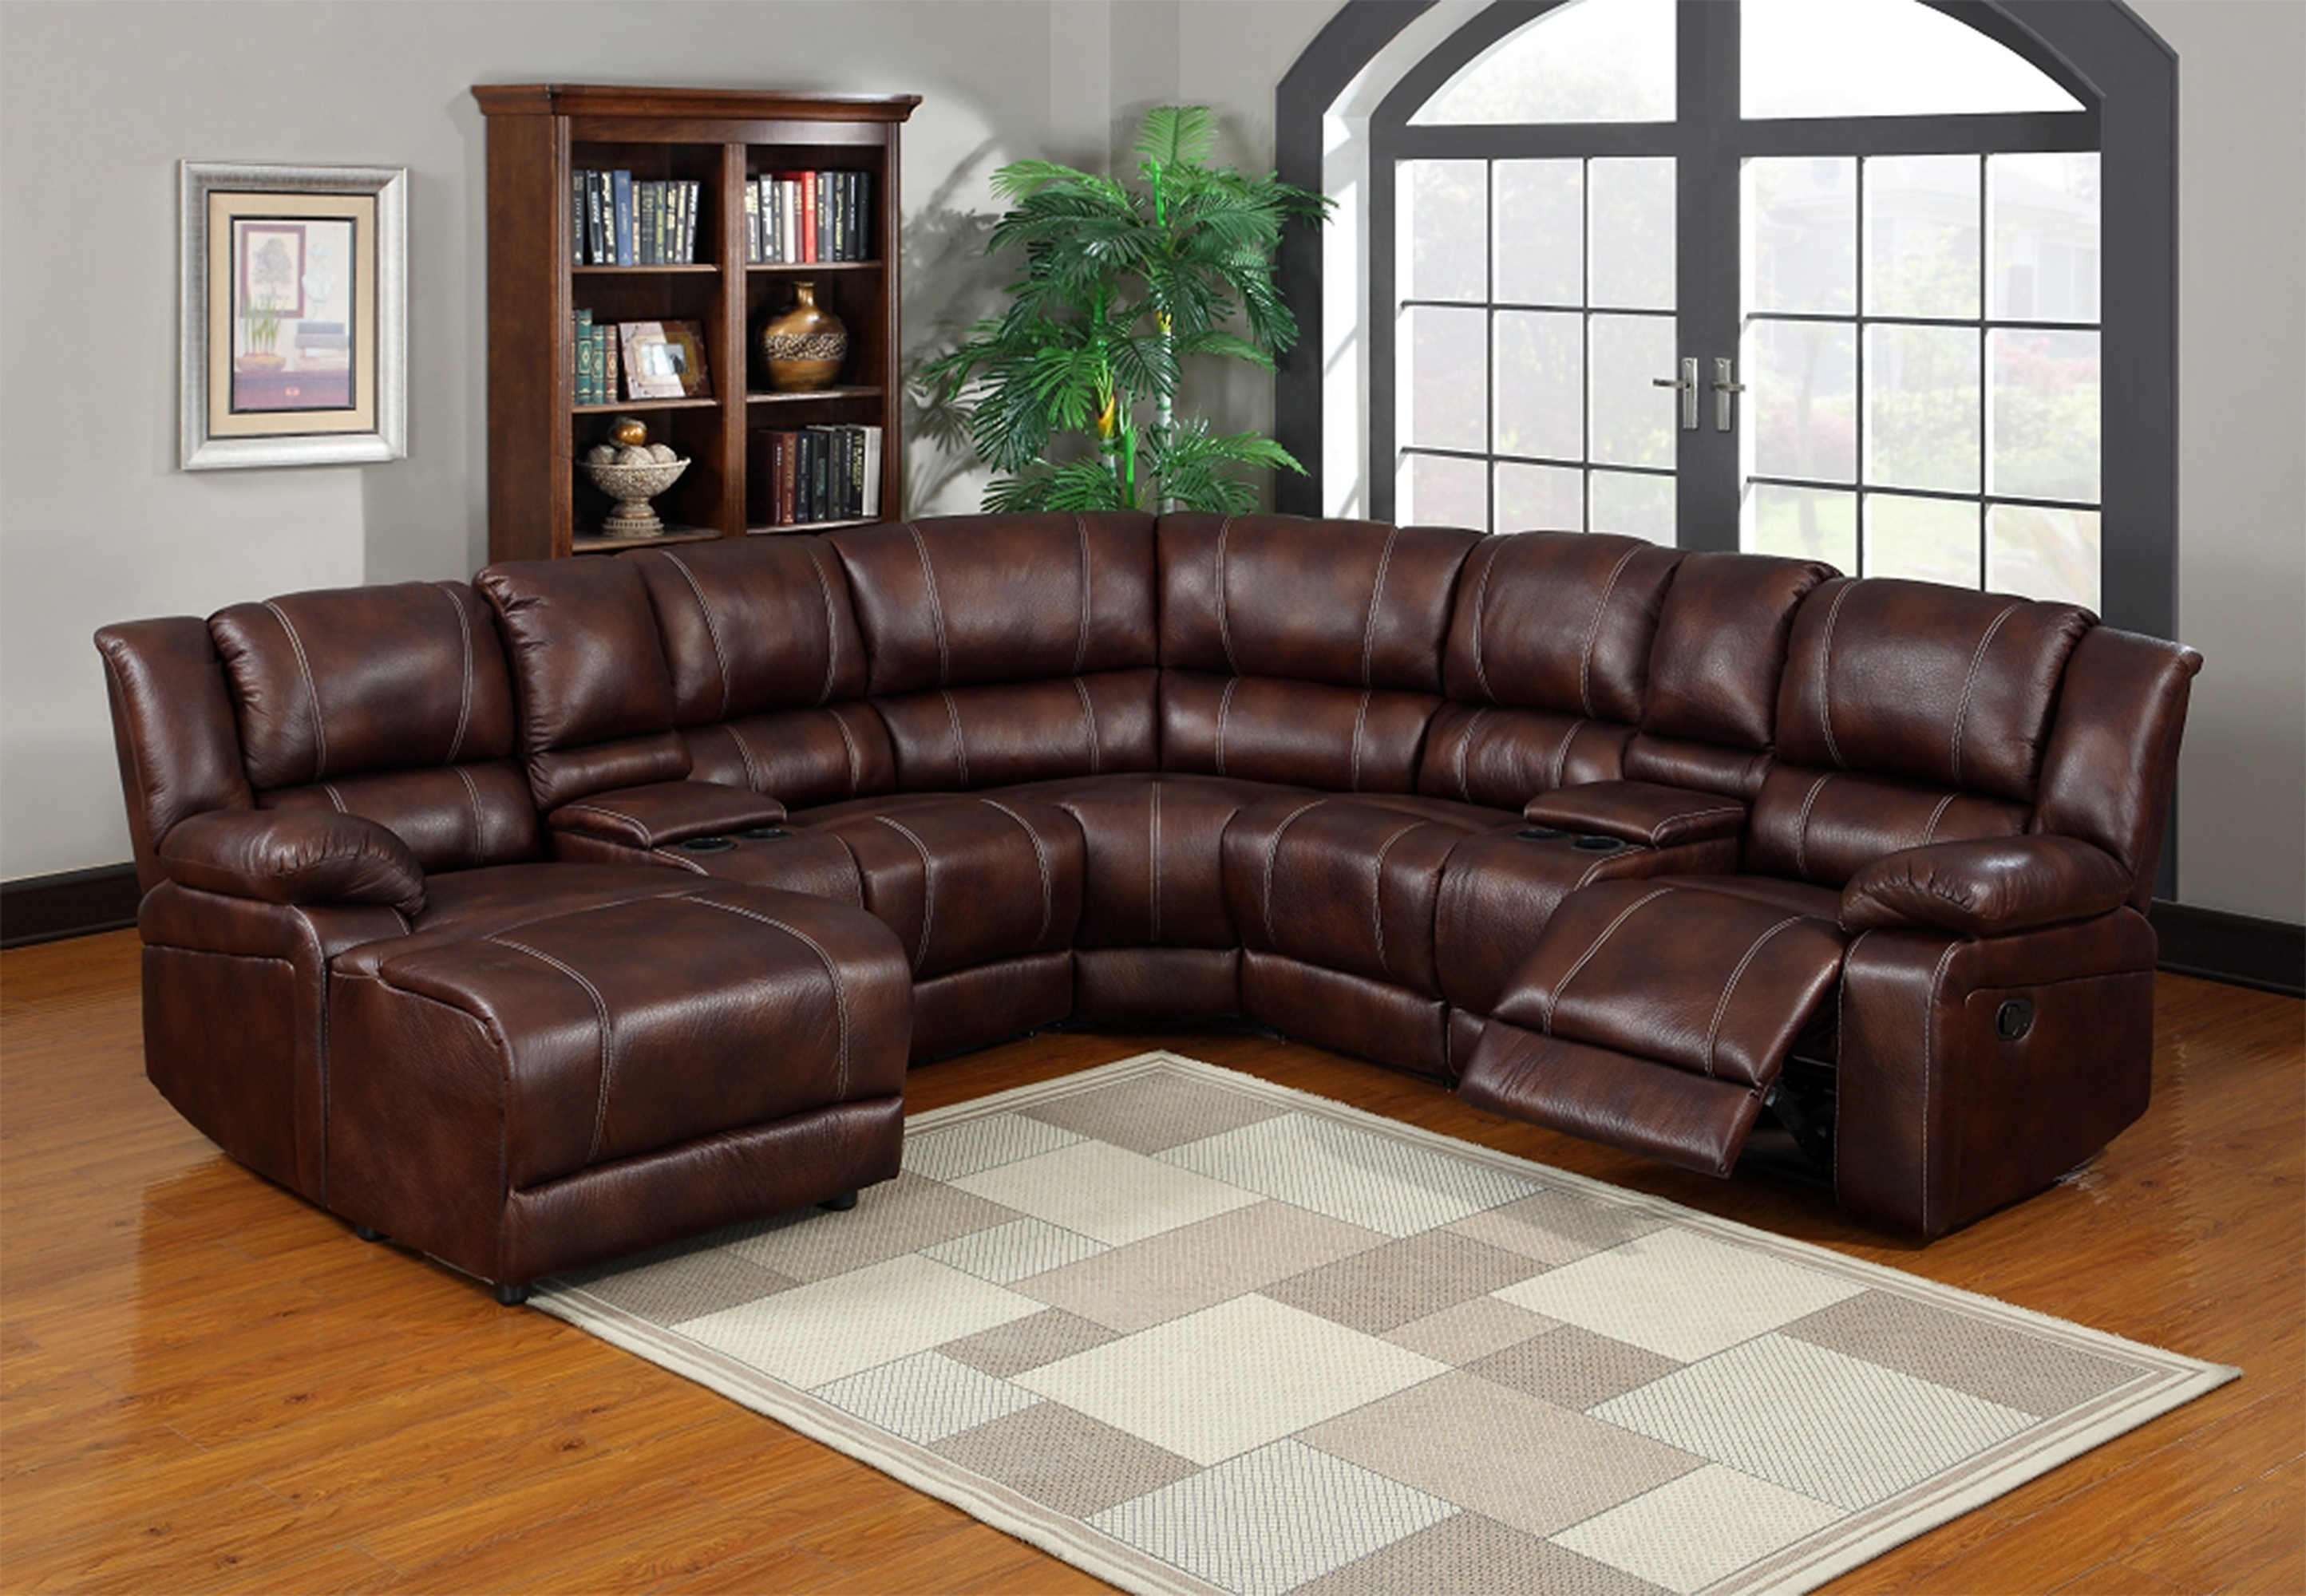 Well Known Leather Motion Sectional Sofa – Home And Textiles Regarding Leather Motion Sectional Sofas (View 19 of 20)